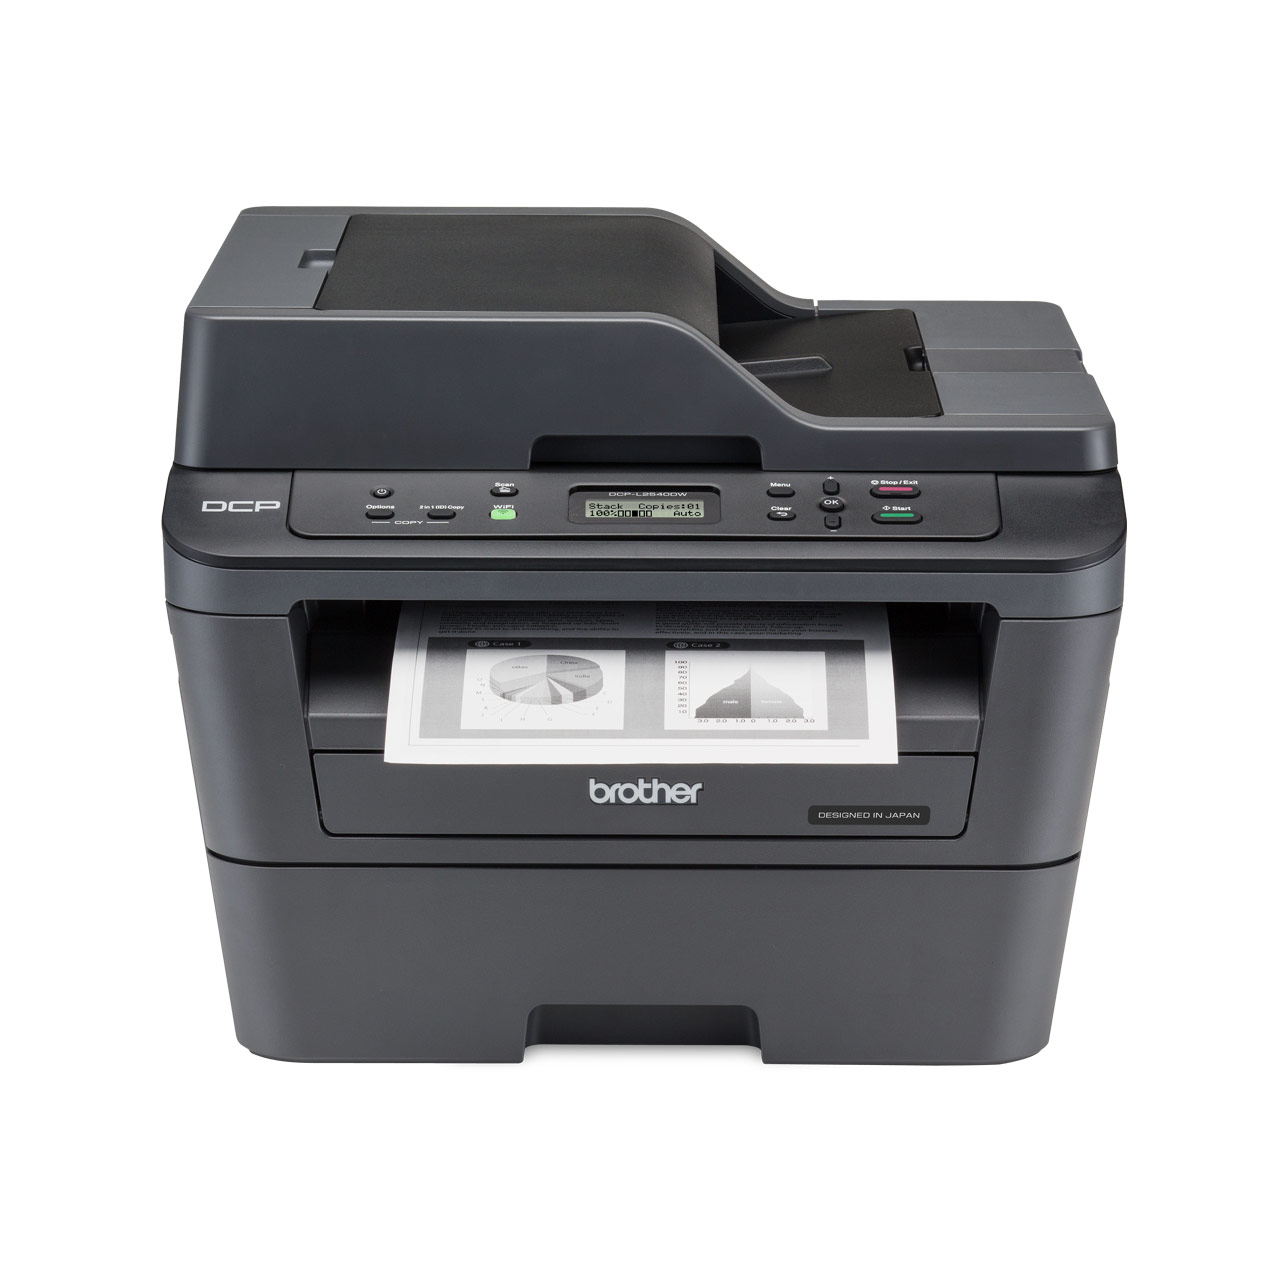 Brother DCP L 2540dw printer drivers for PC